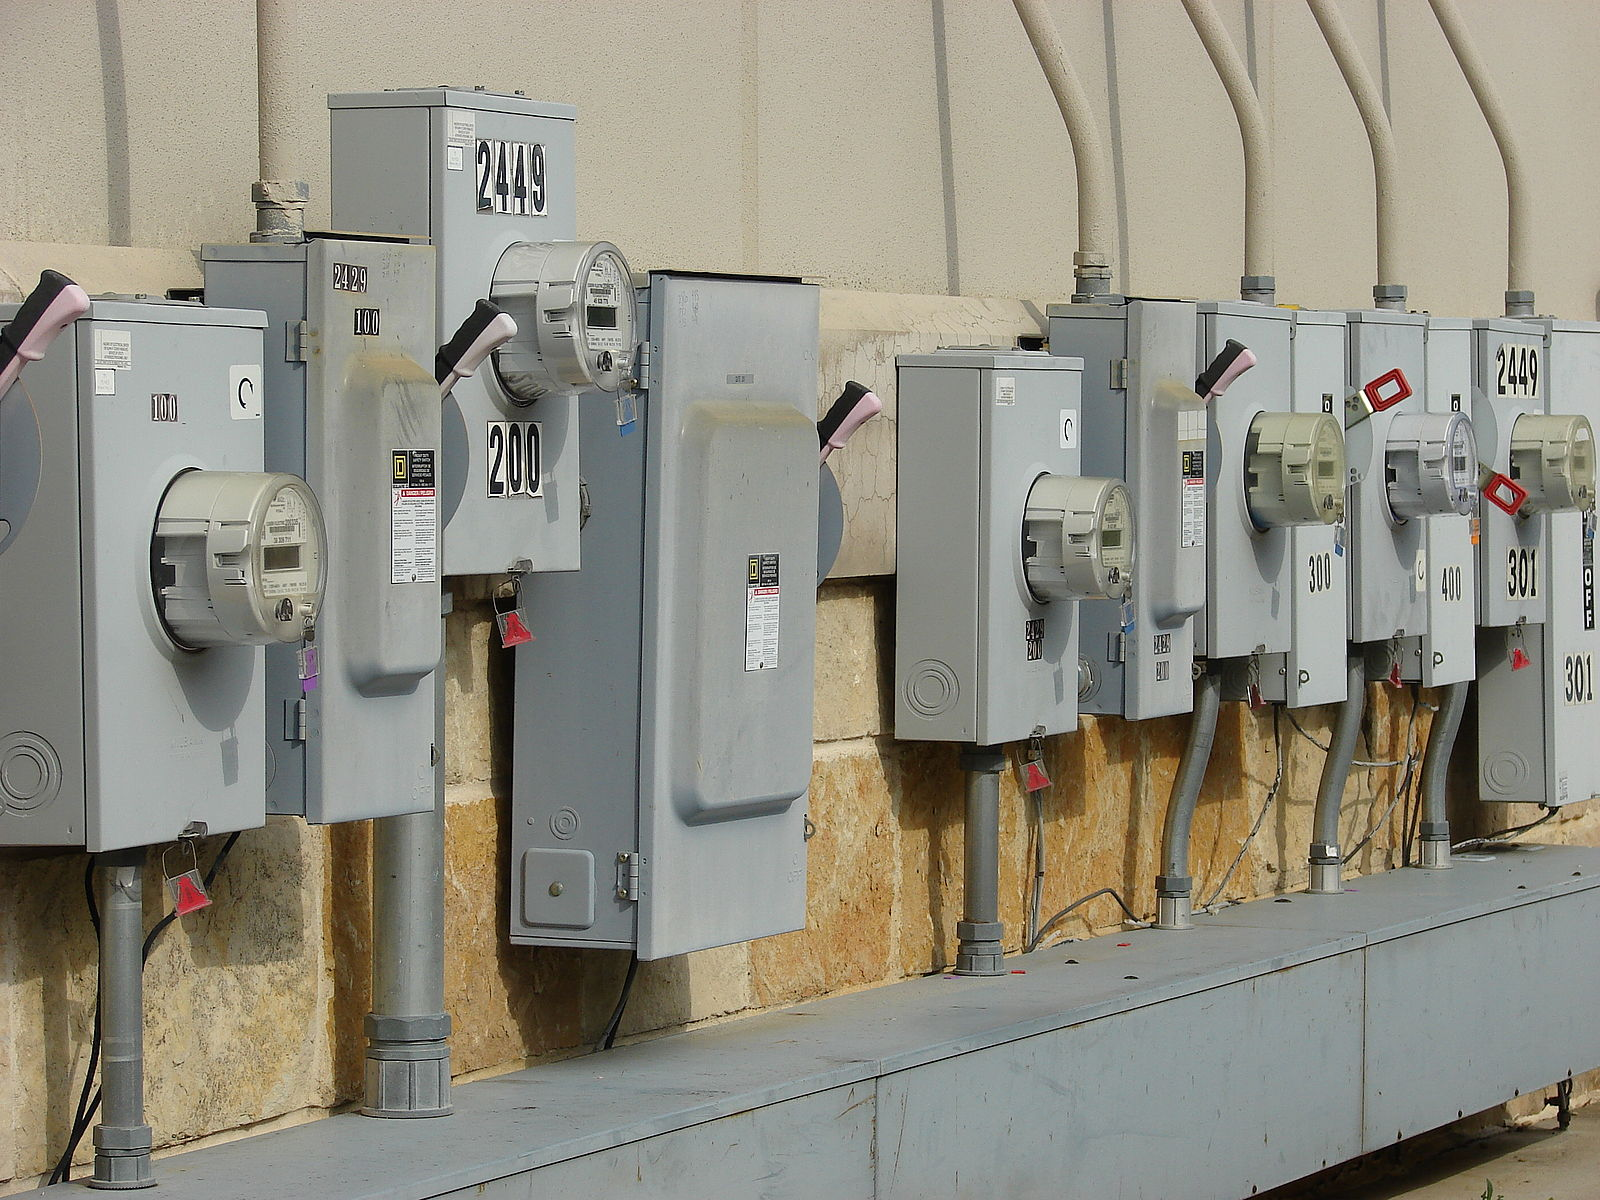 Flooded Electrical systems need to be inspected and replaced.